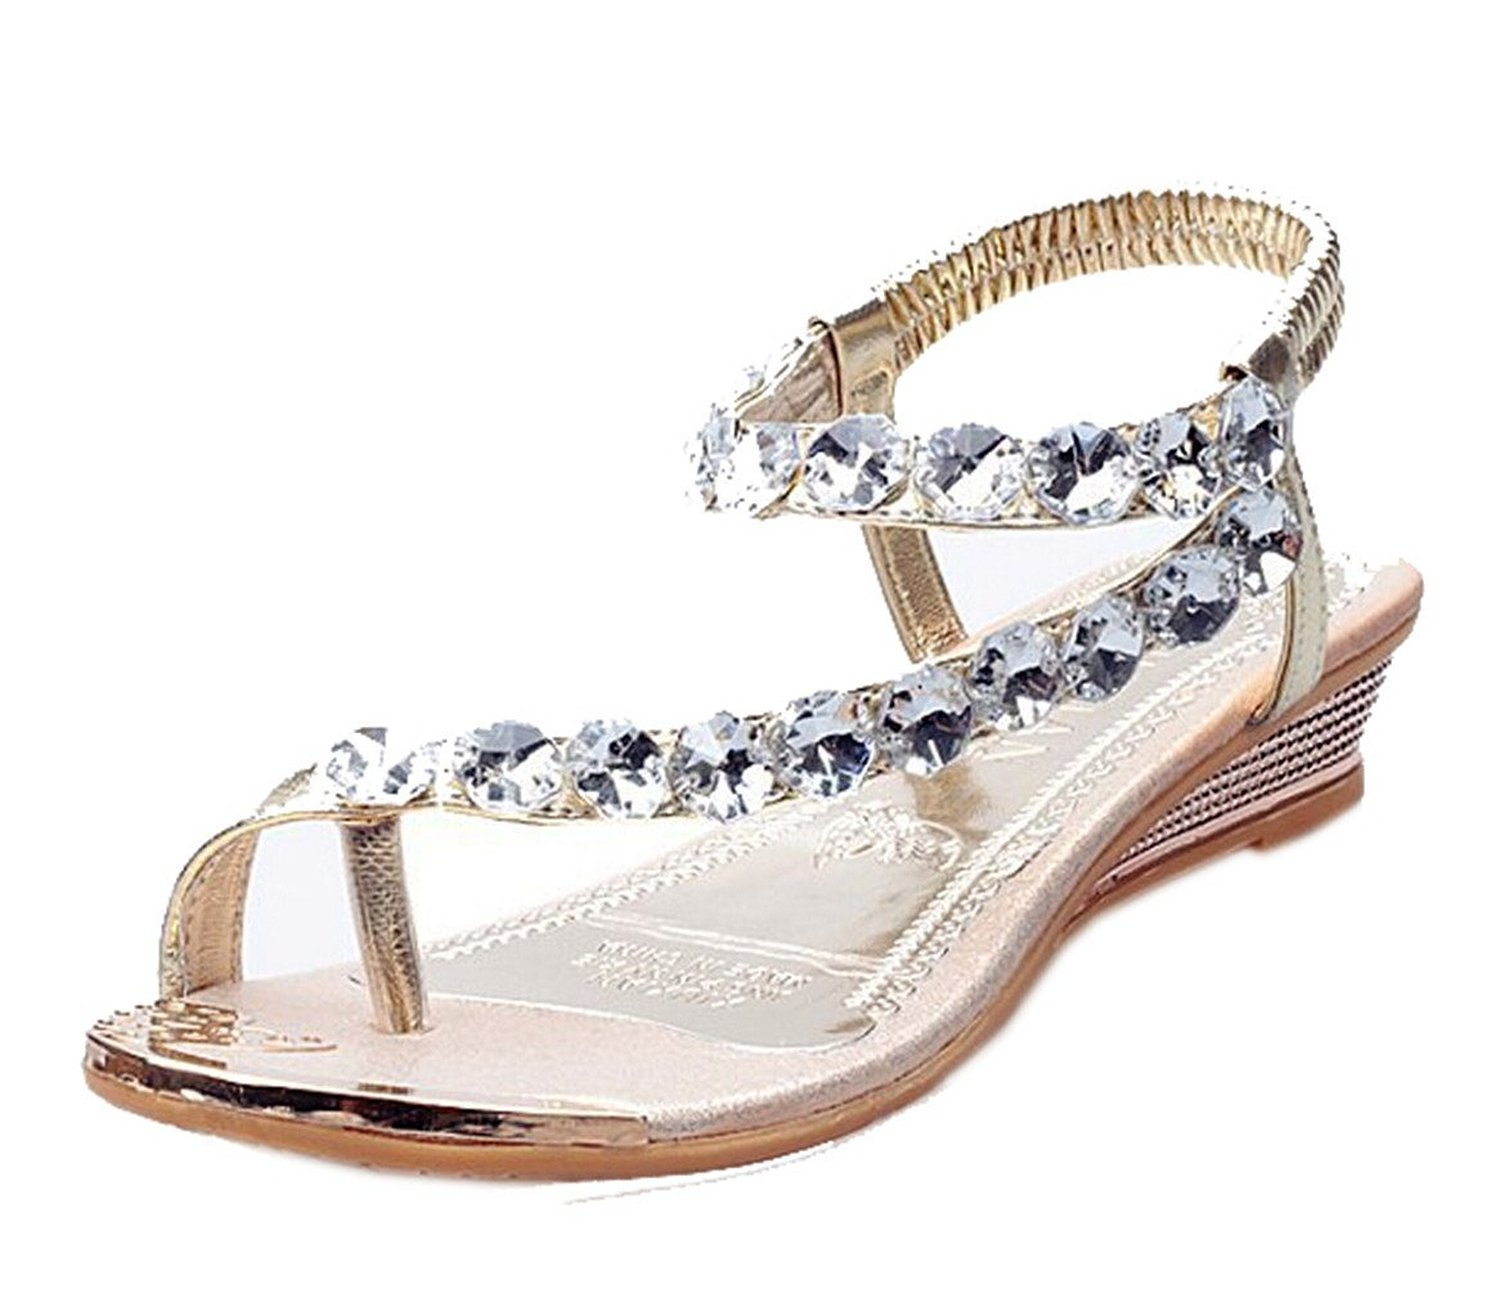 e23b2742f44de Women sandals bling rhinestone flats sandals fashion flip flops shoes jpg  1500x1289 Bling sandals